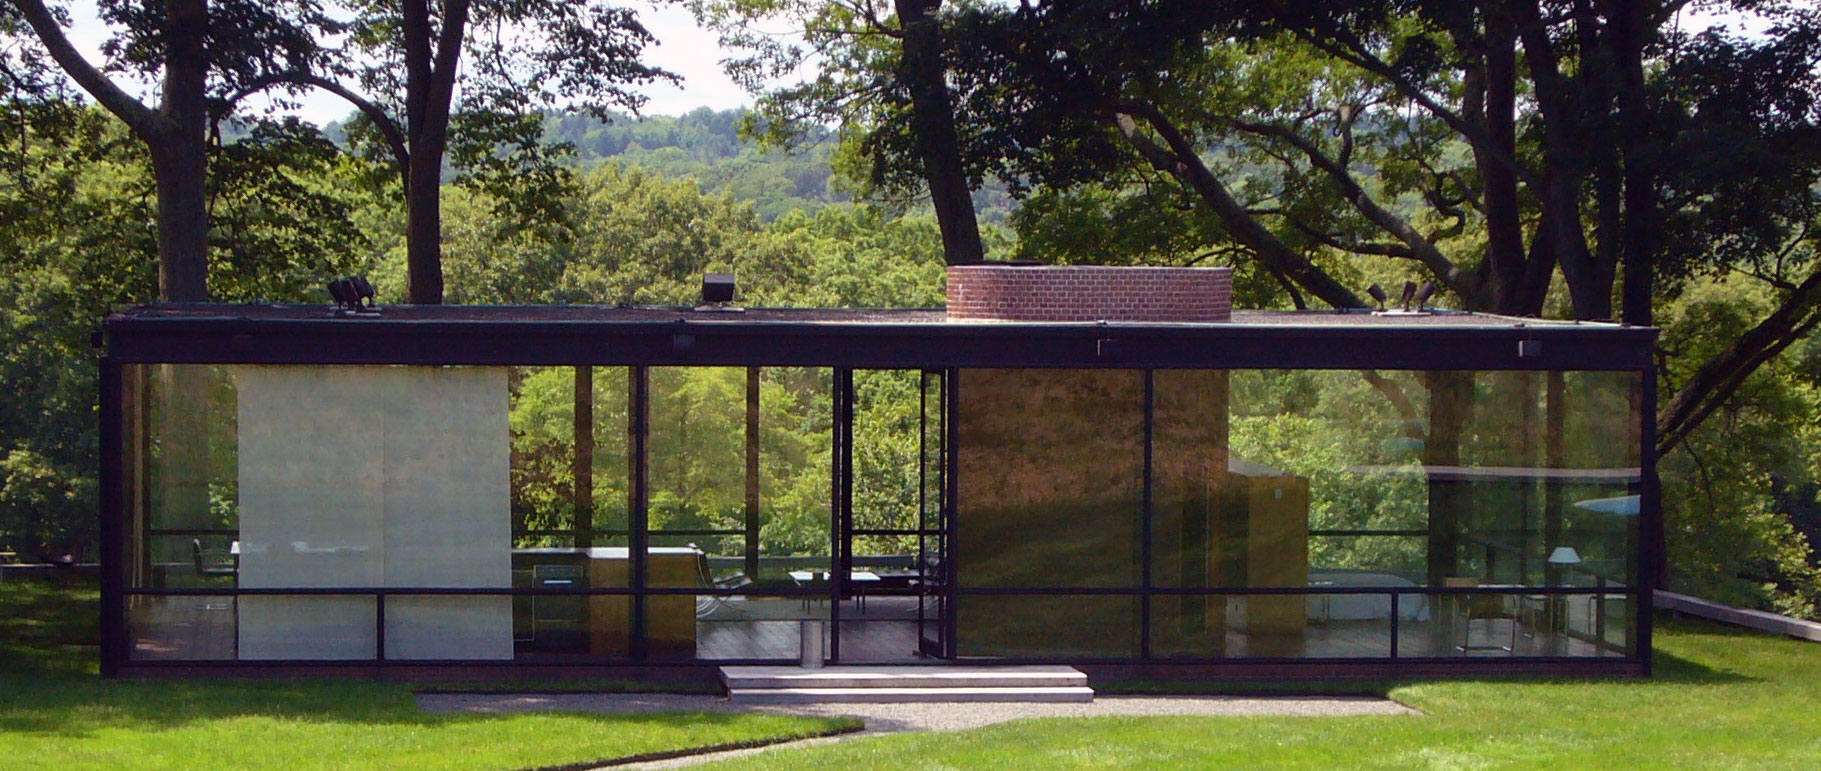 Philip johnsons glass house inside and out architecture